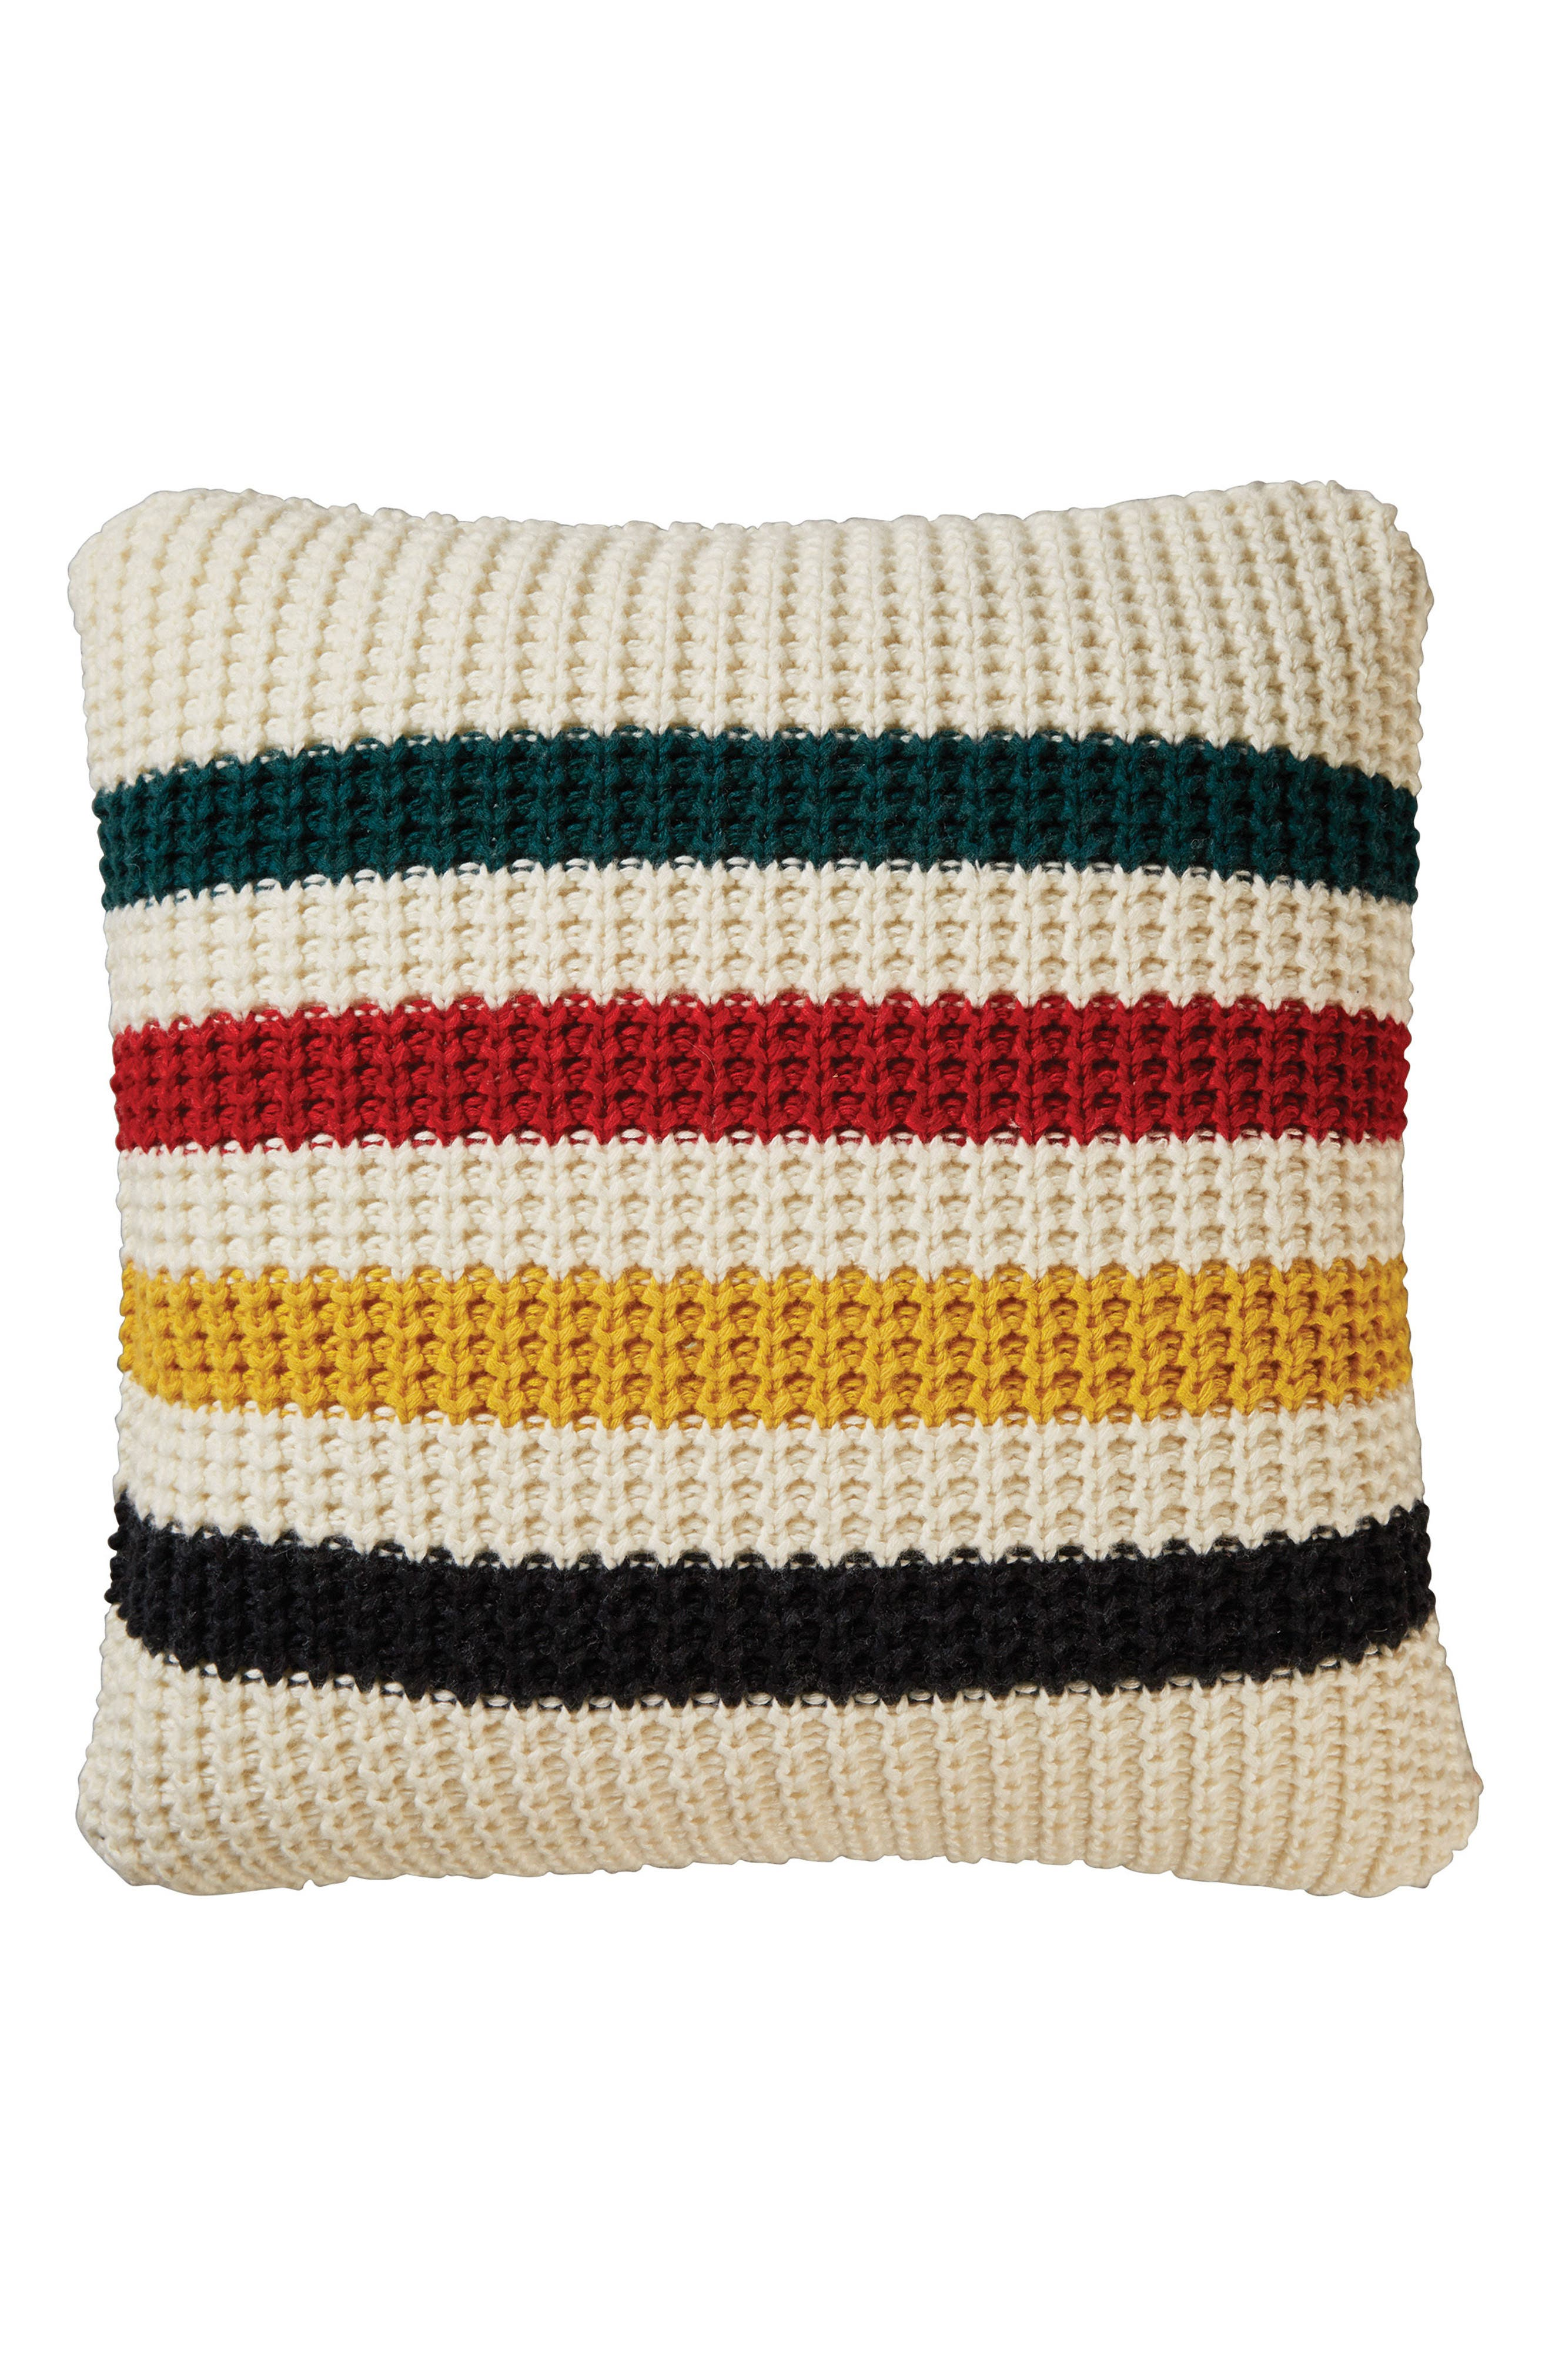 Glacier Park Knit Pillow,                         Main,                         color, 104